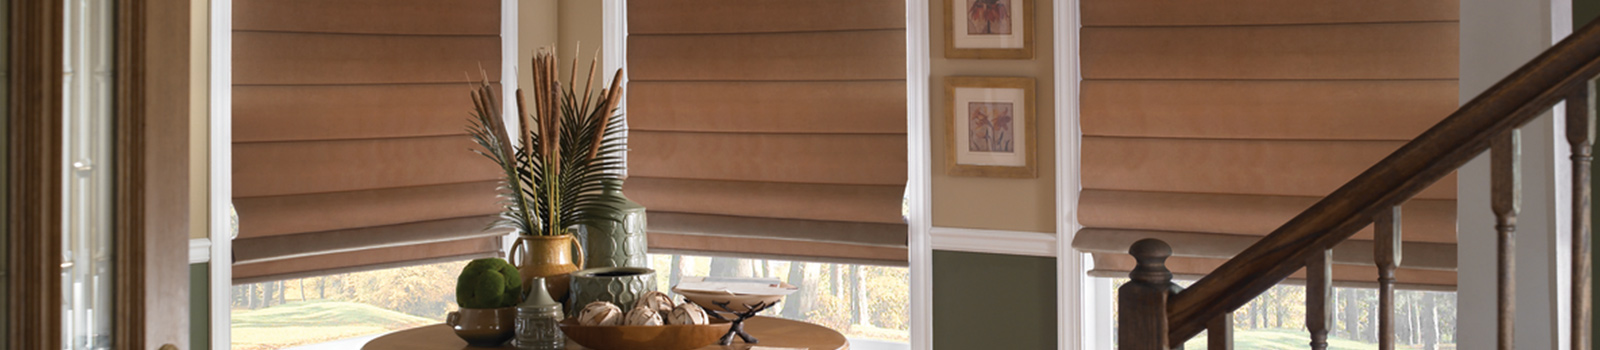 Fabric Roman shades and bamboo Roman shades by BlindsNMore